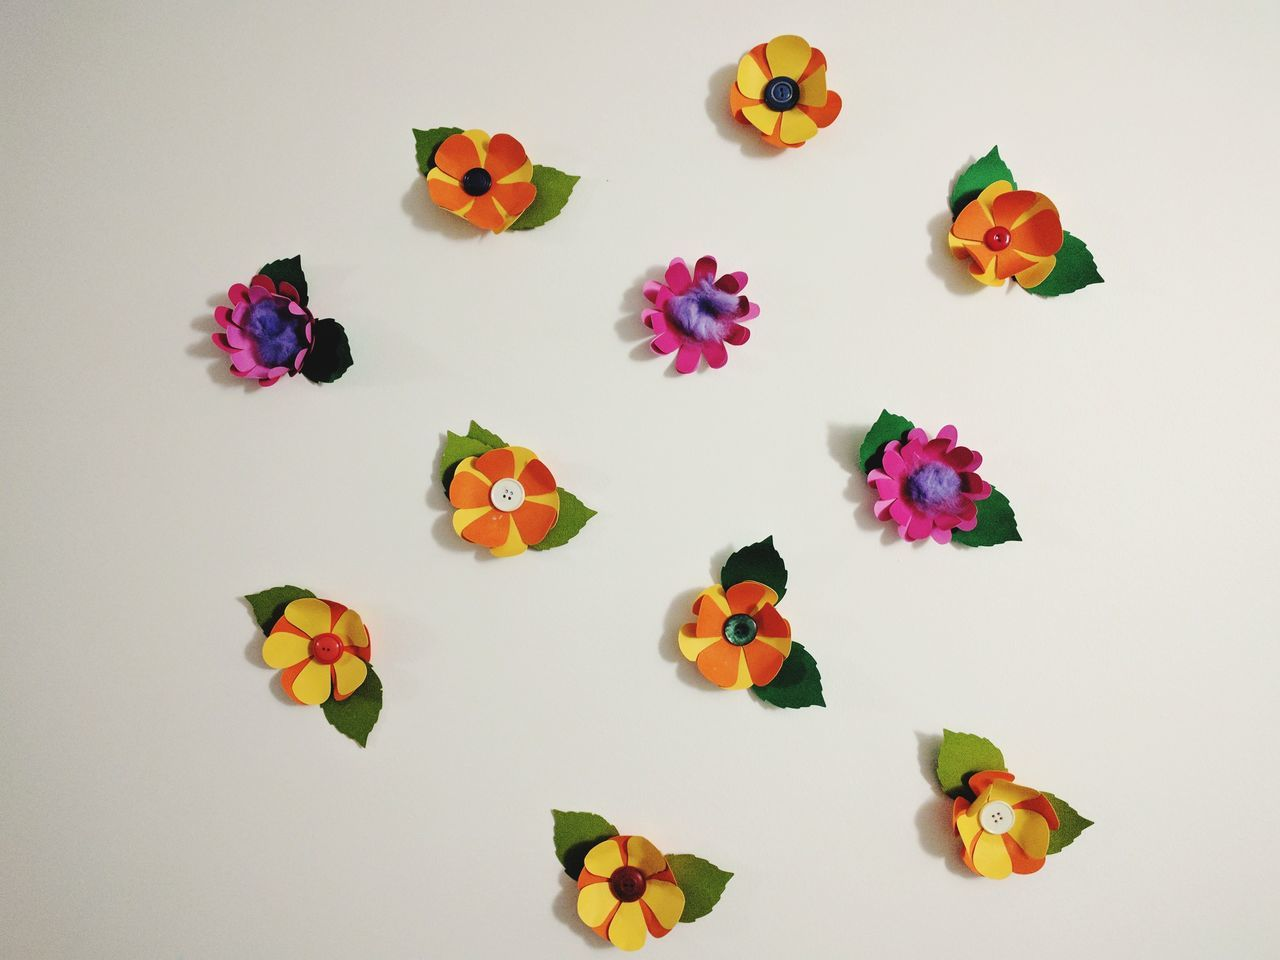 Multi Colored Flower Leisure Activity Crafts Creativity Homemade Variation Indoors  Papercraft Illuminated Hand Crafts Different Styles